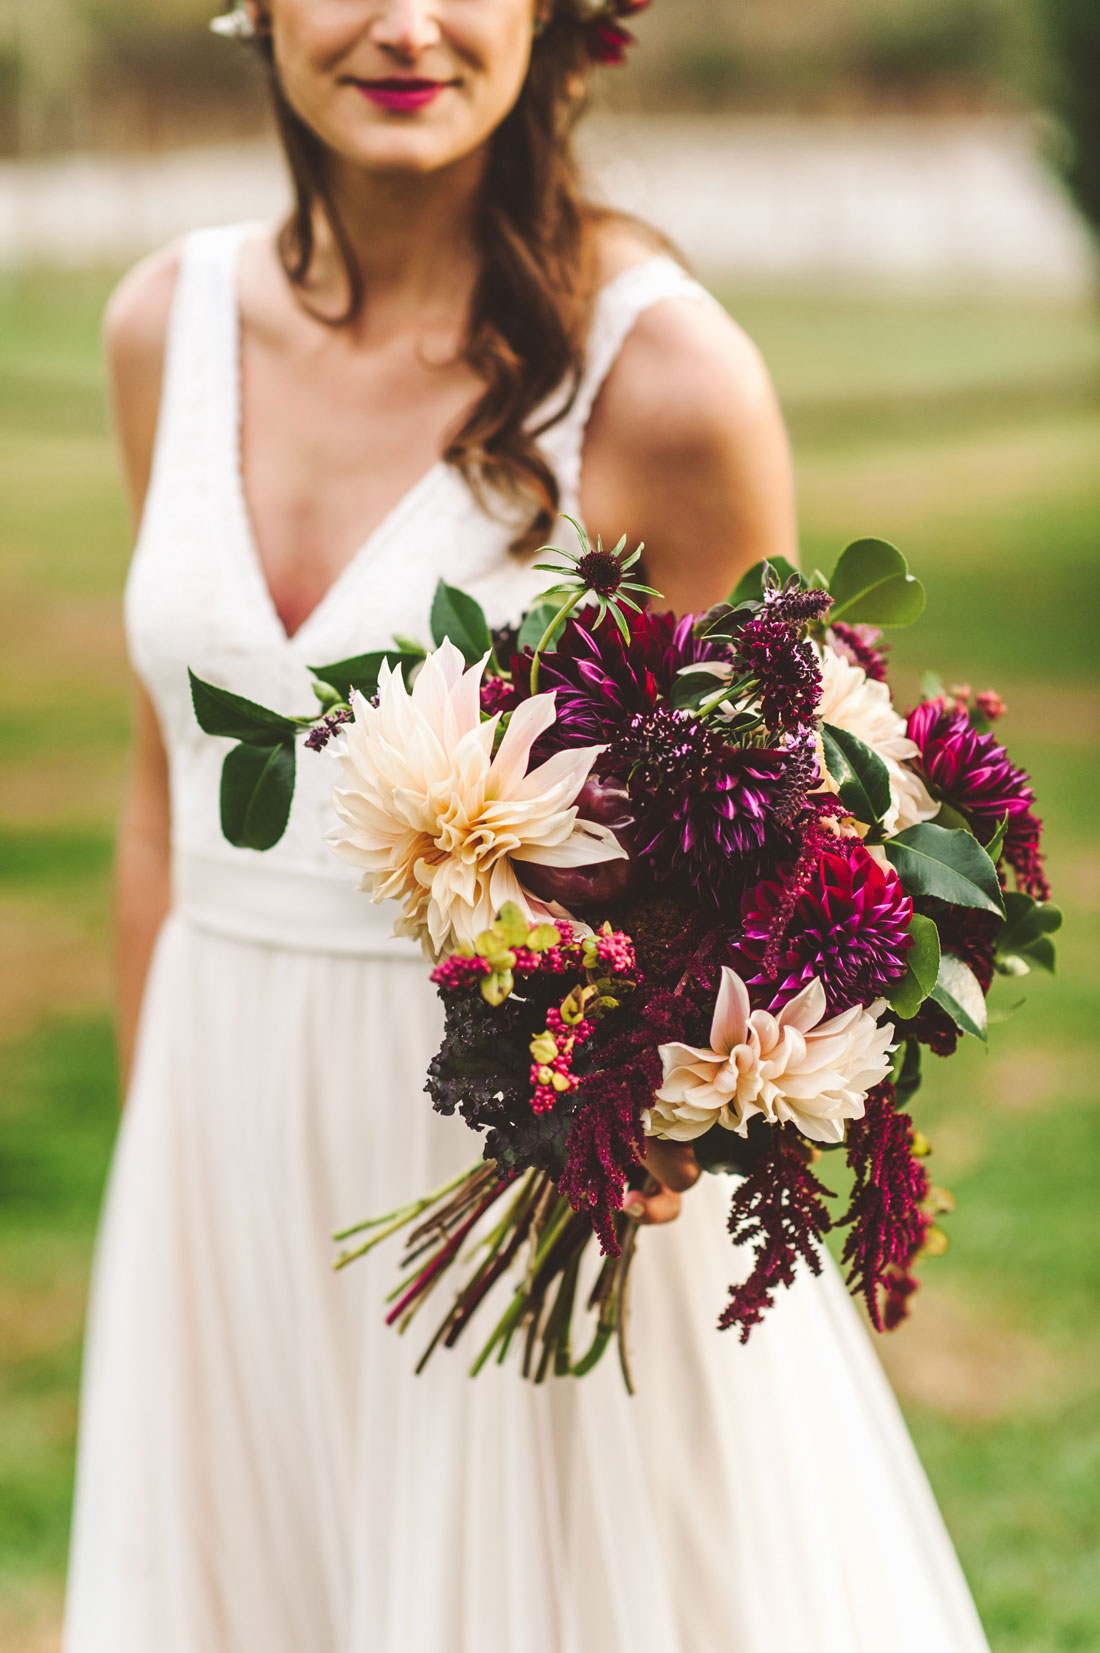 Hand in Hand Wedding, flowers by LynnVale Studios, photo by Rebekah J. Murray